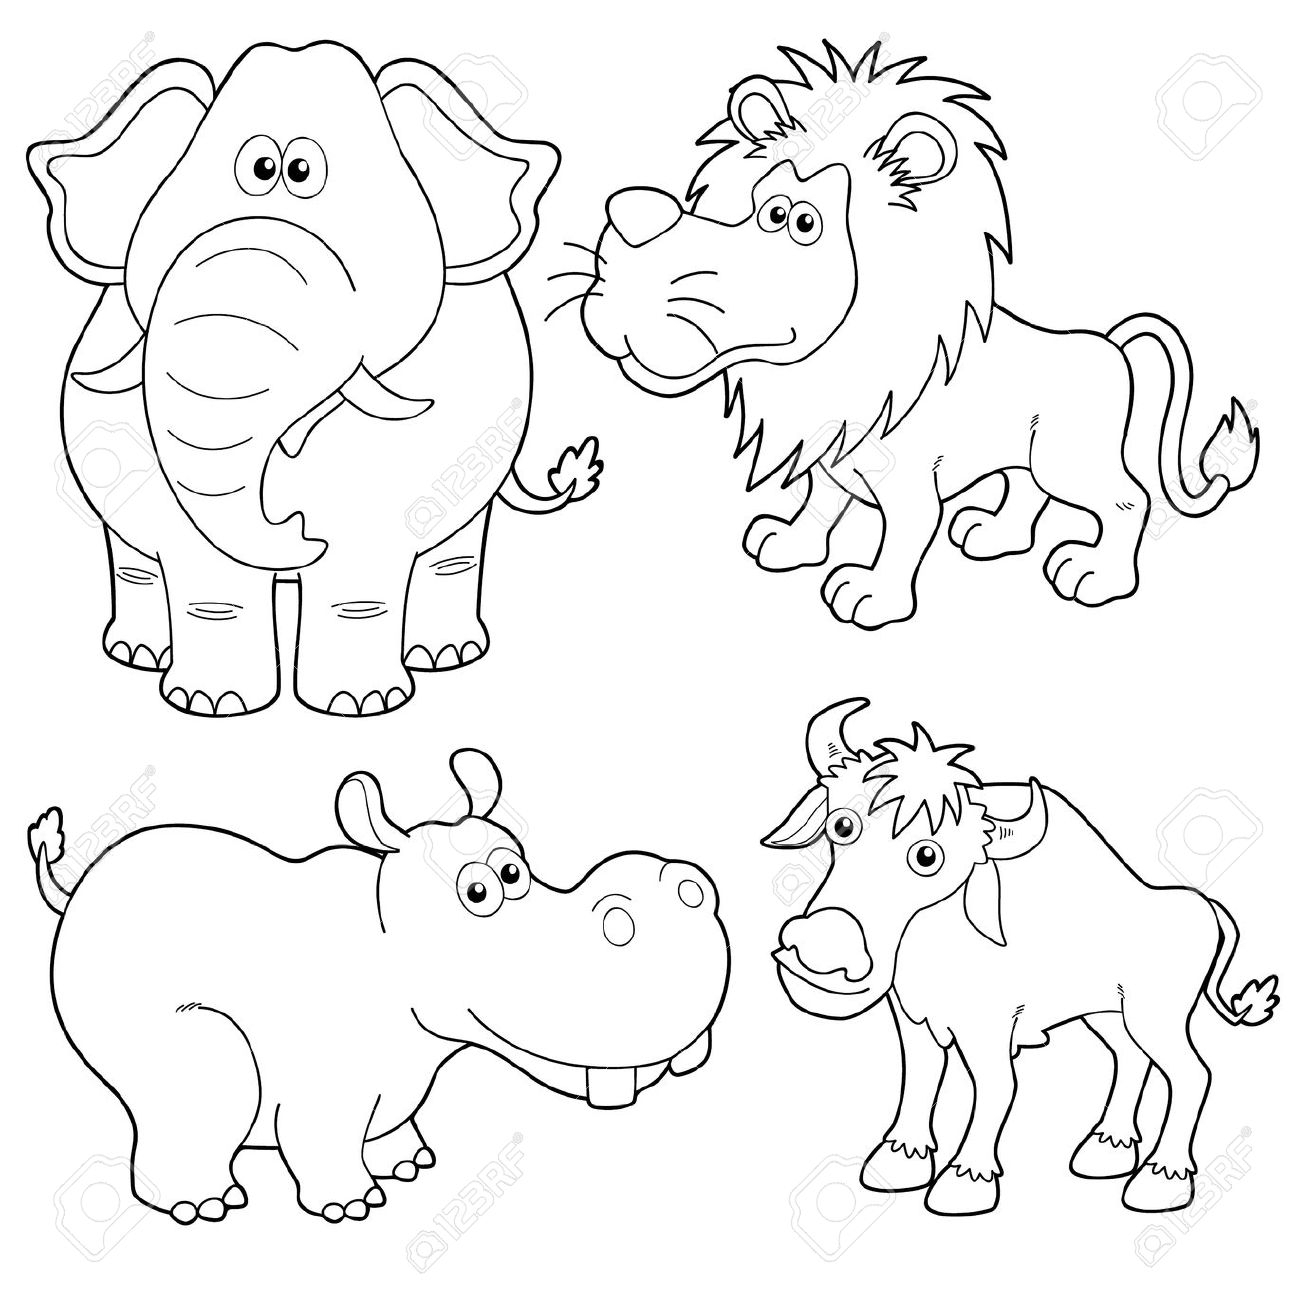 Animal Outline Drawing At Getdrawings